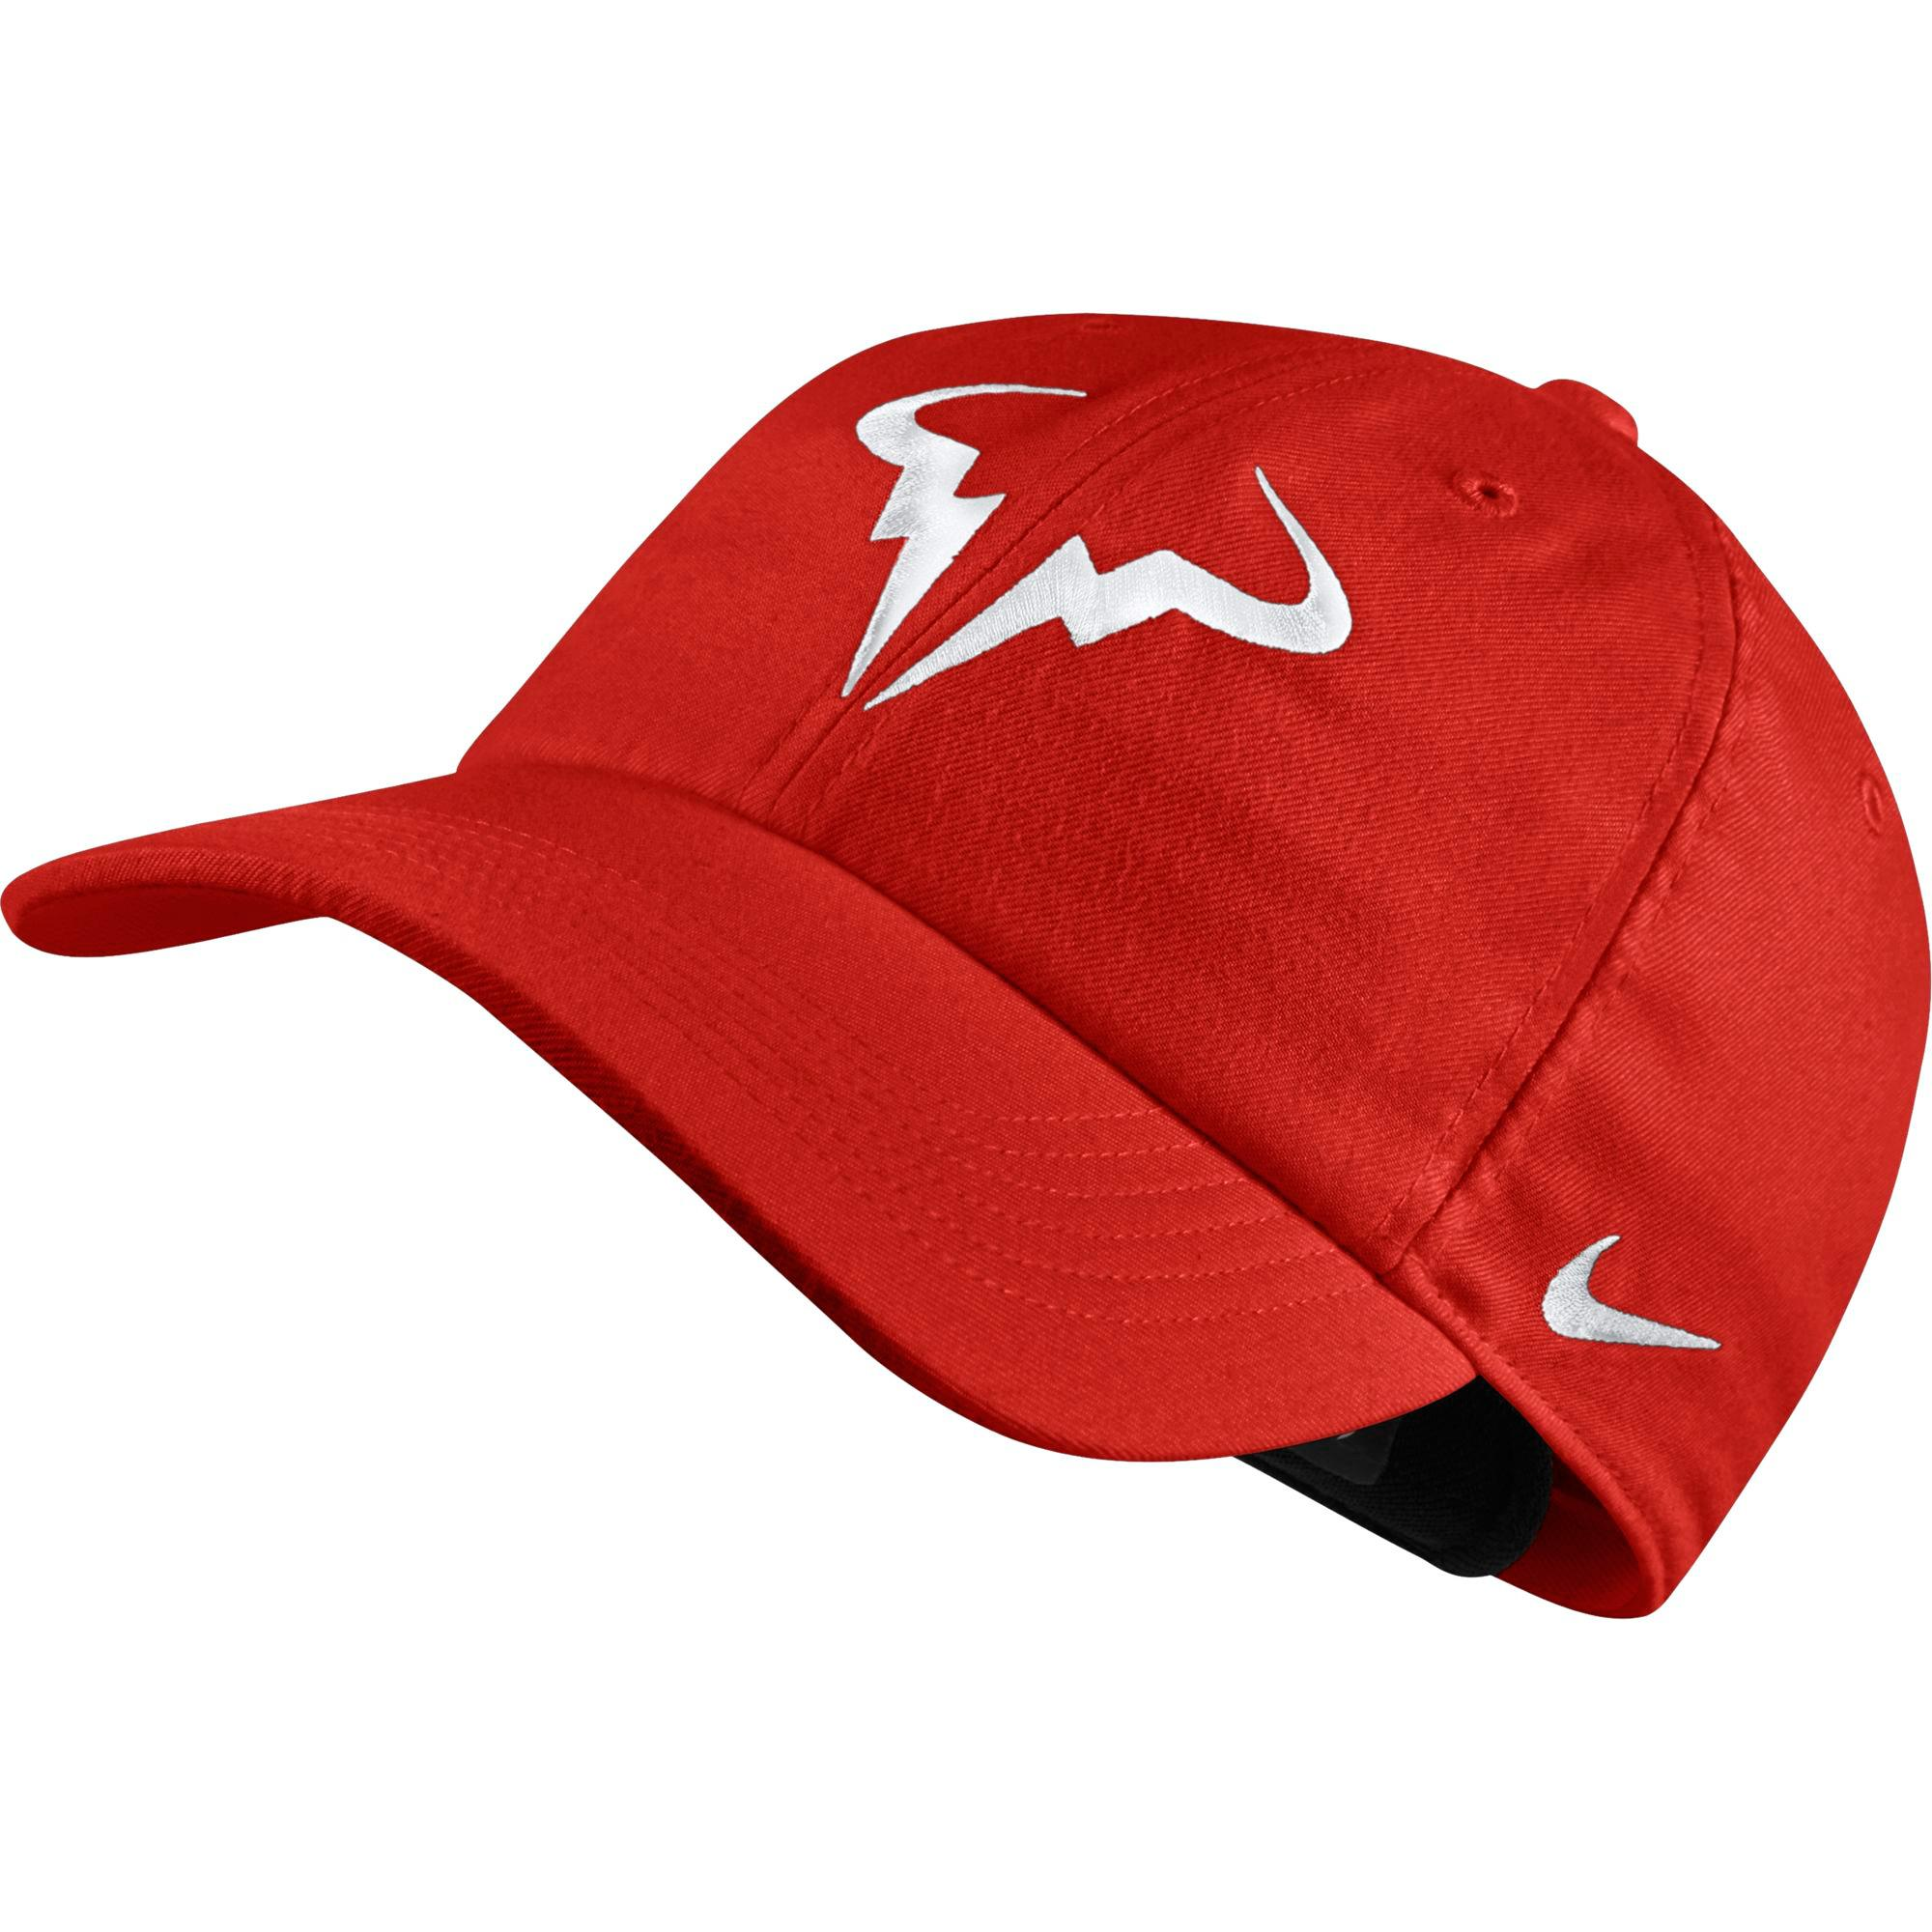 eca3f10cd1b35 Nike Rafa AeroBill H86 Adjustable Cap - Habanero Red - Tennisnuts.com